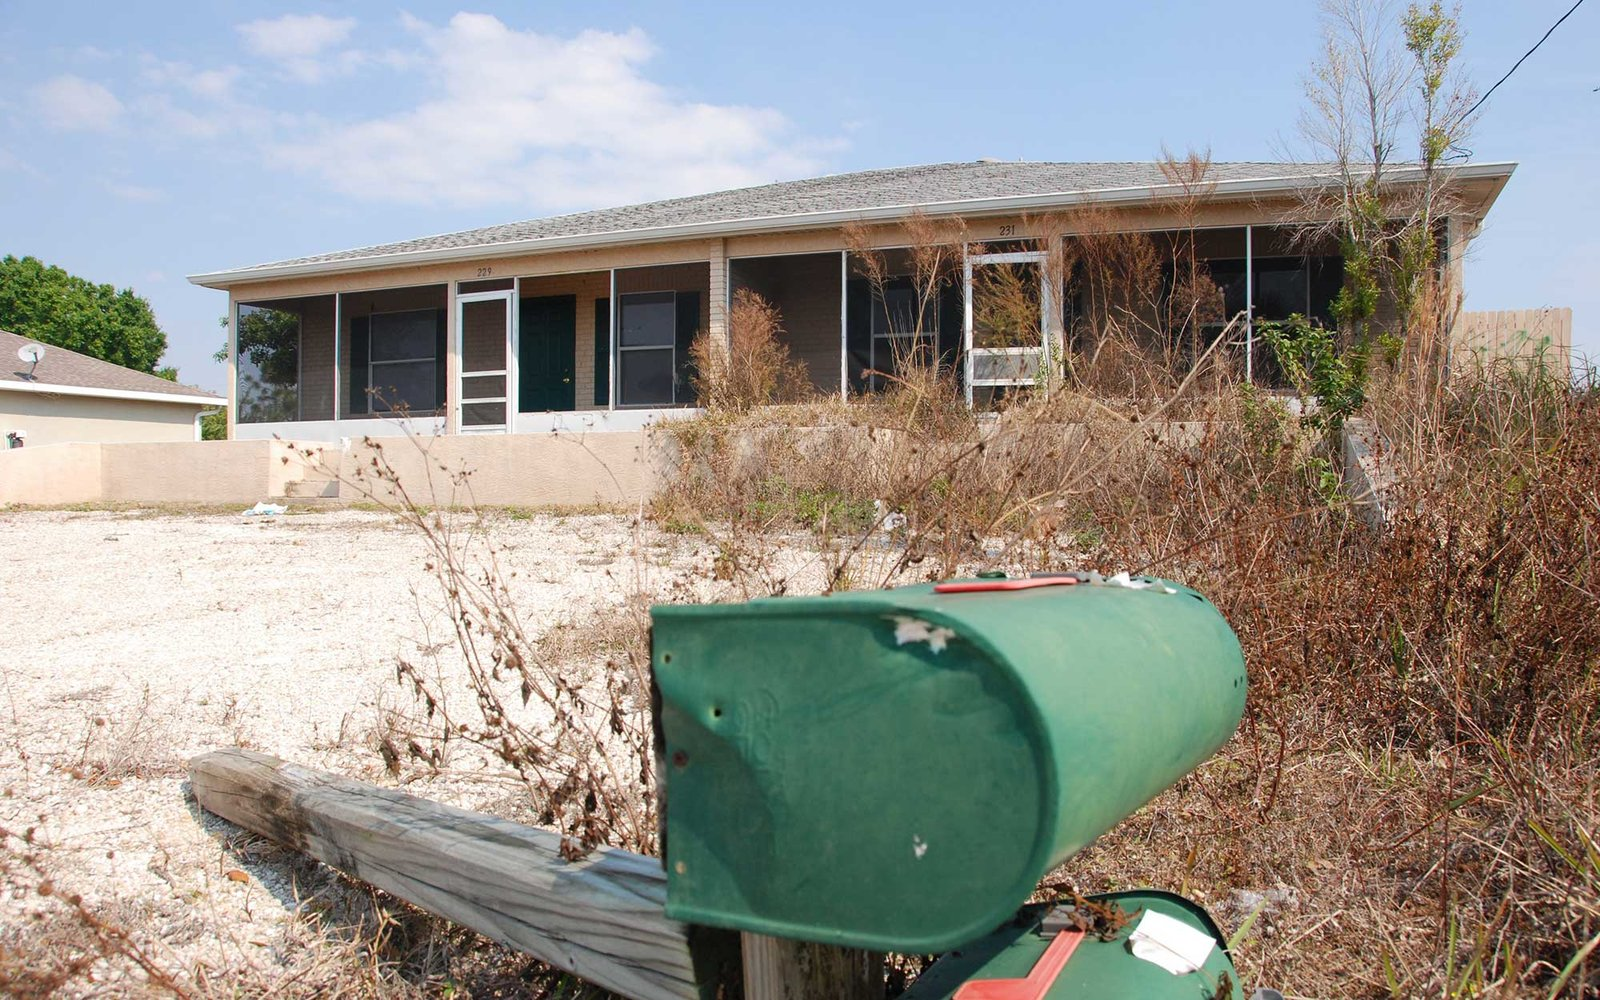 NBC NEWS -- Florida Housing Crisis -- Pictured: In this Lehigh Acres, Florida, neighborhood, home after abandoned home reflects the dismal state of the housing market -- Photo by: Stephanie Himango/NBC NewsWire